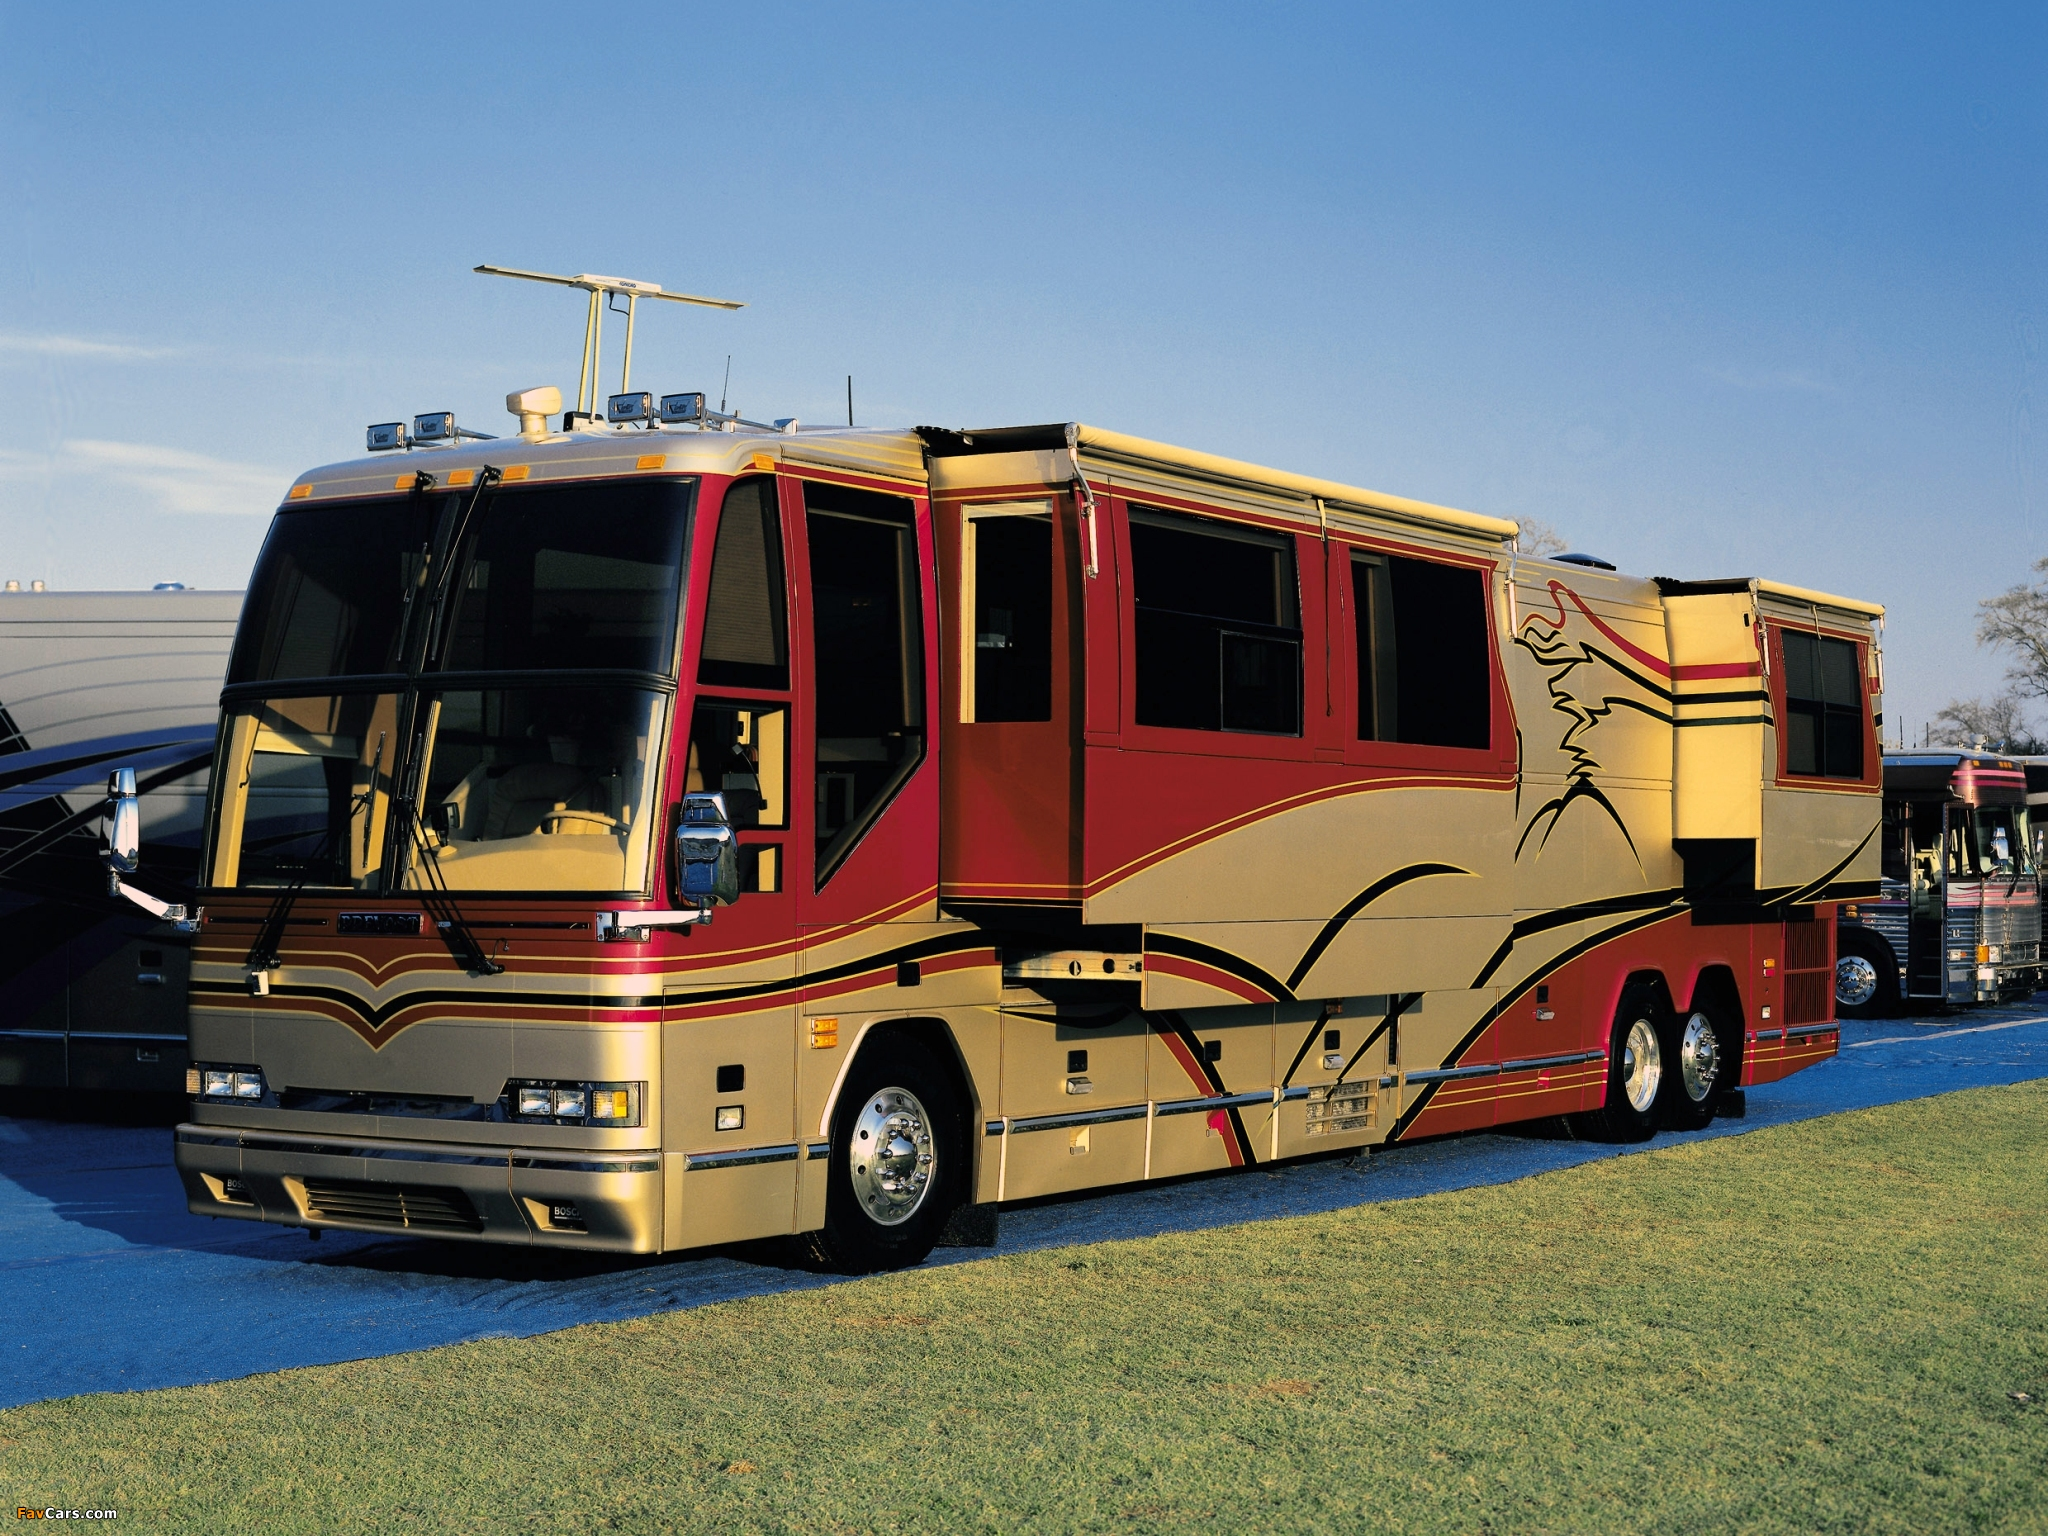 Prevost H3 45 Vip Motorhome 2004 Wallpapers 2048x1536 HD Wallpapers Download Free Images Wallpaper [1000image.com]